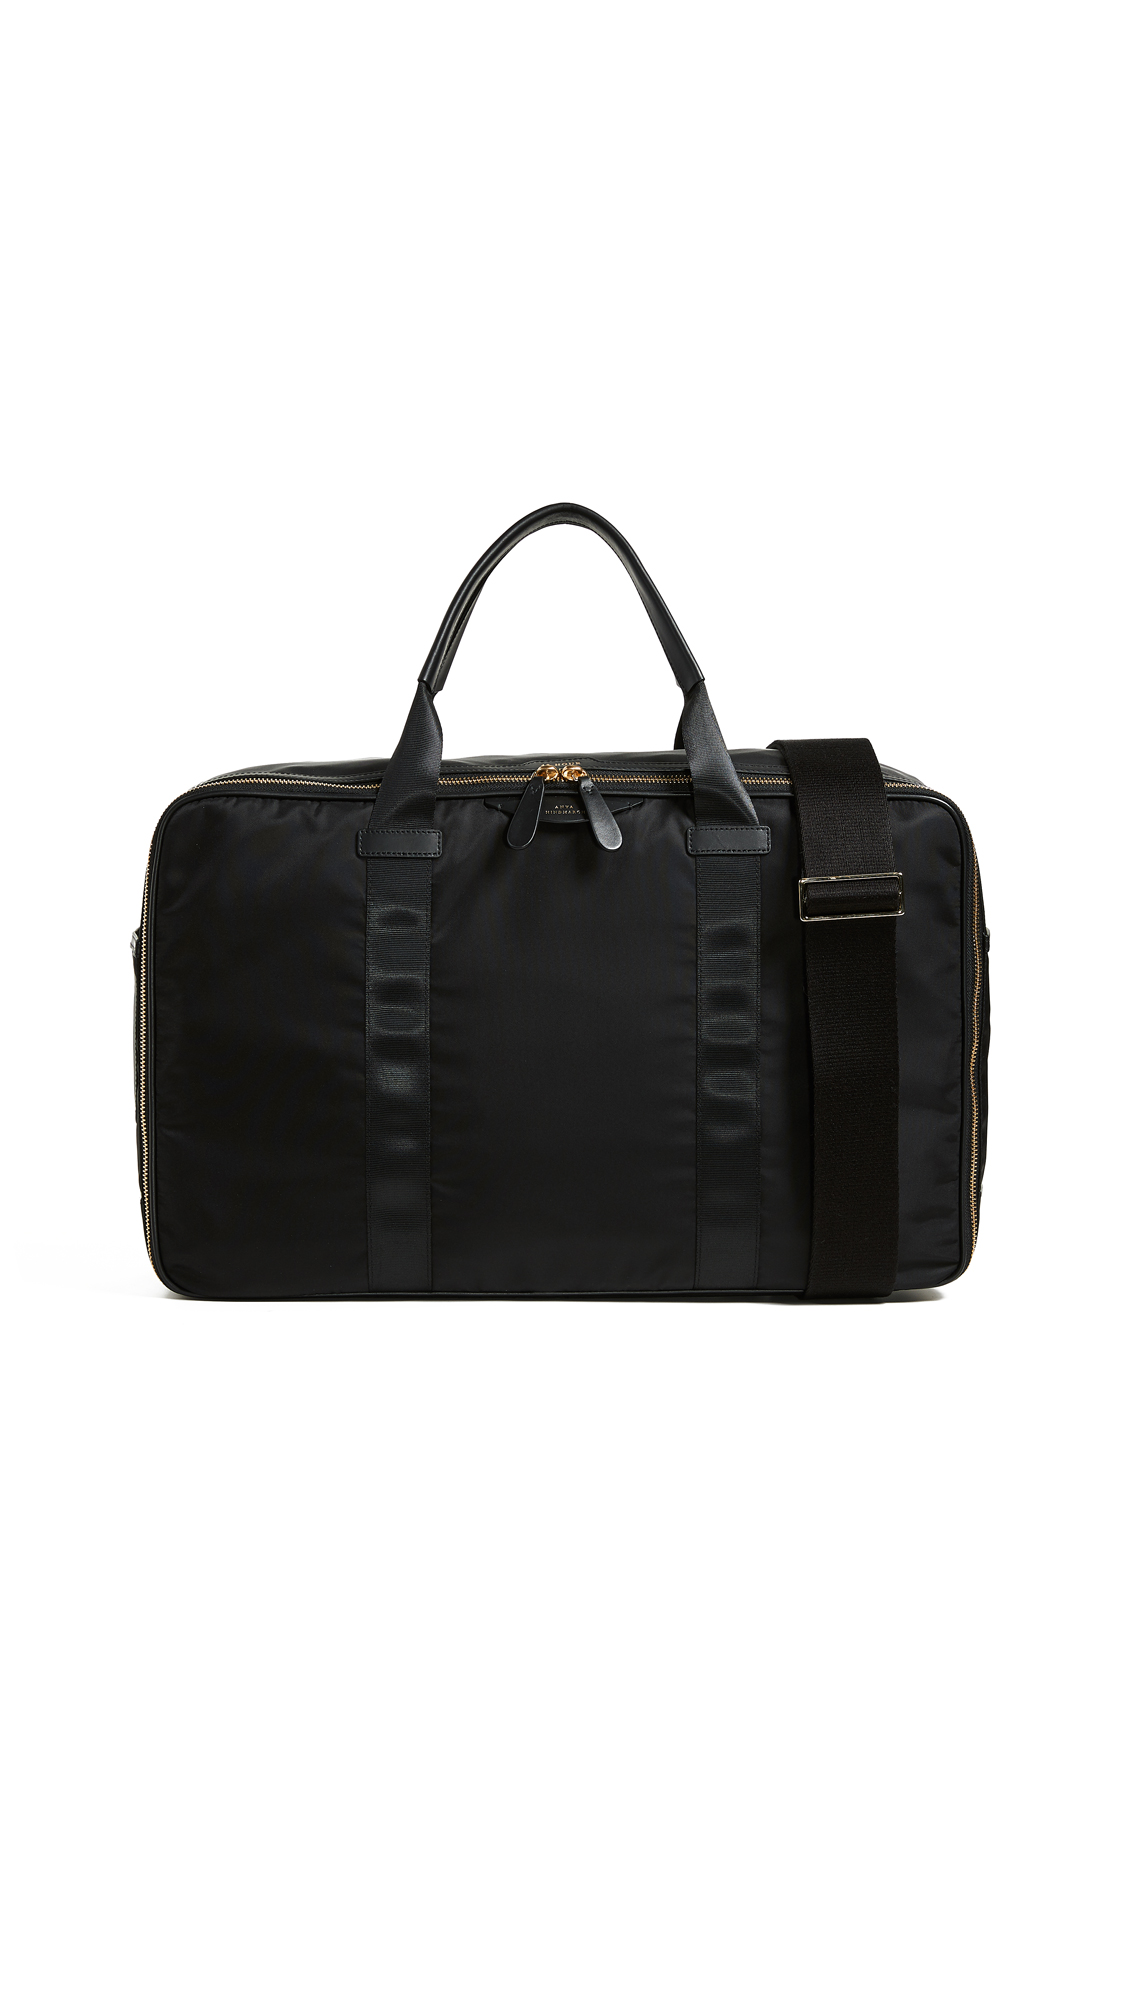 ANYA HINDMARCH Soft Suitcase, Black